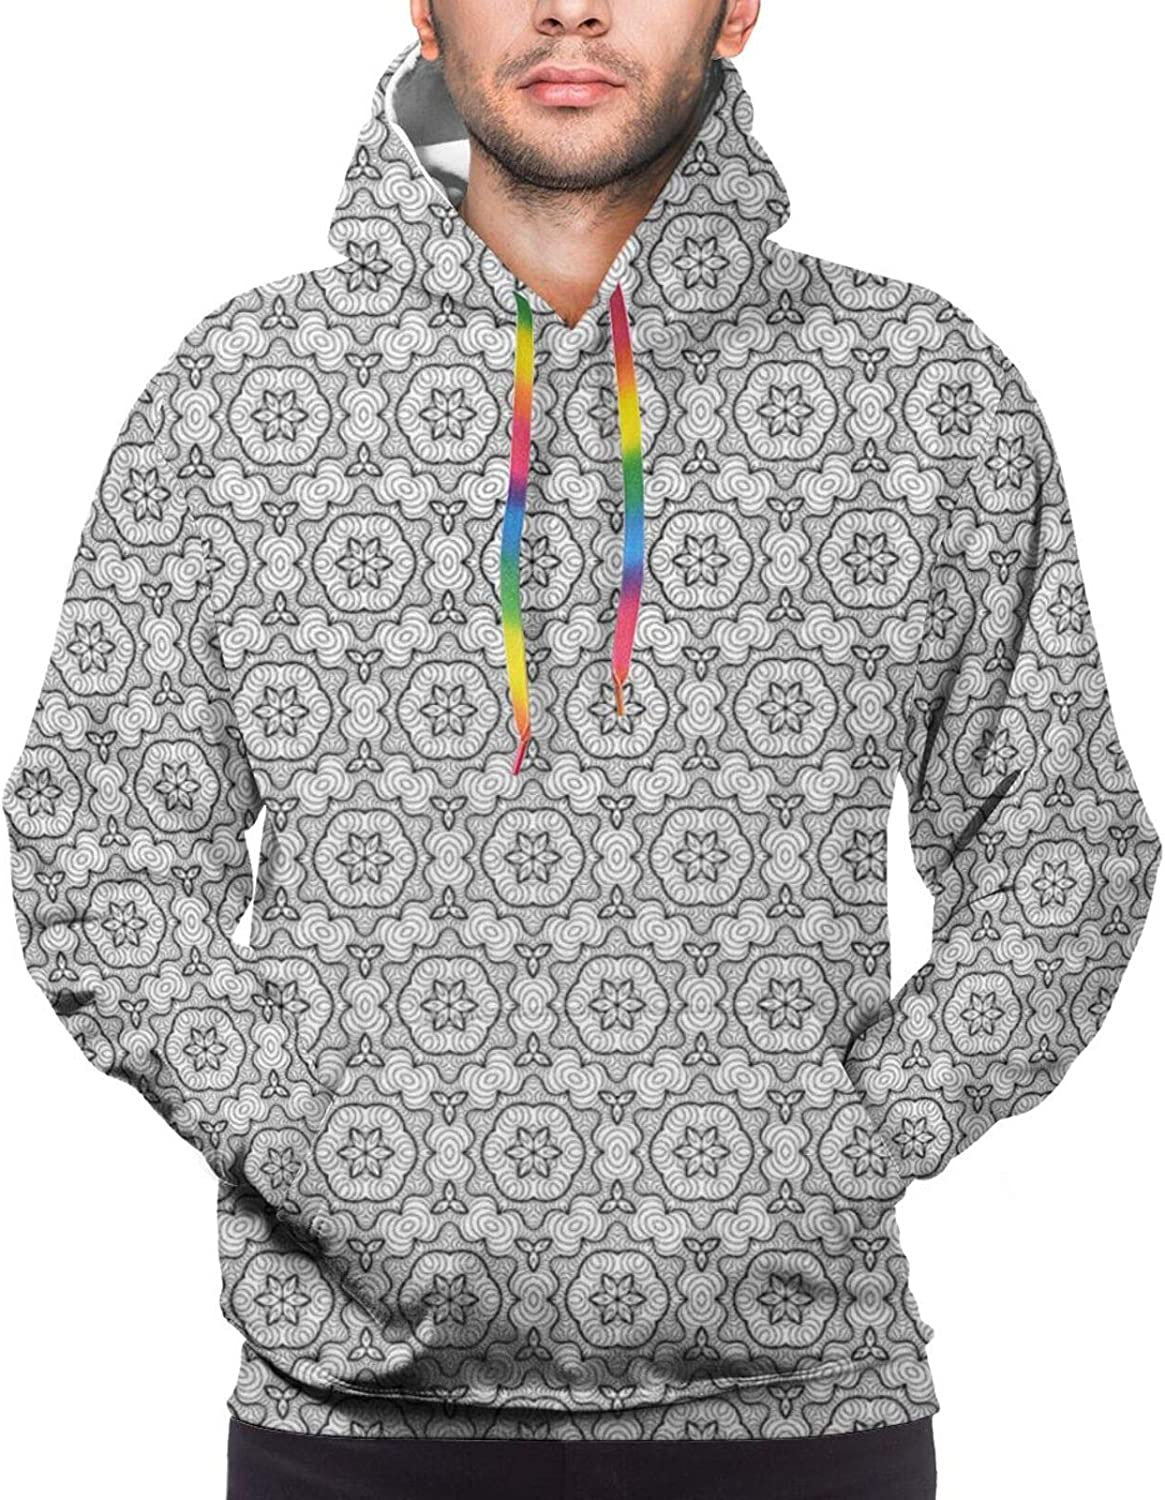 Men's Hoodies Sweatshirts,Abstract and Artistic Mandala Style Floral Symmetrical Simple Motifs Tile,Small